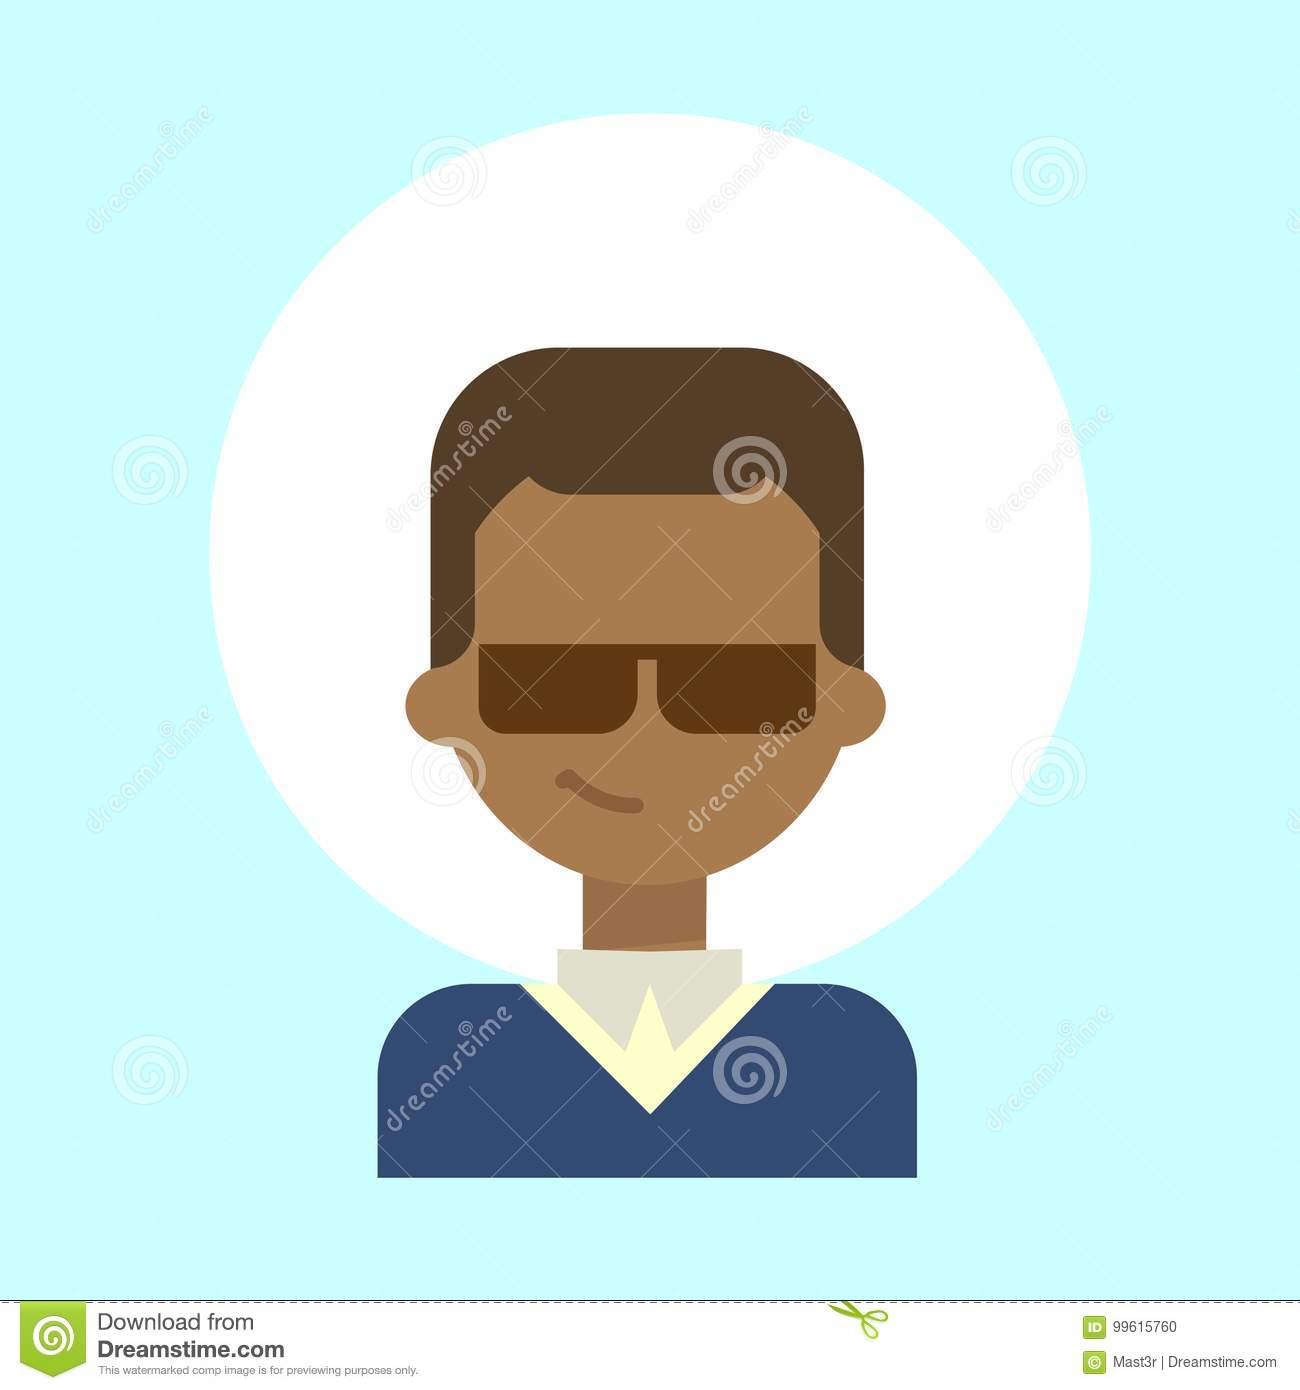 African American Male Wearing Sun Glasses Emotion Profile Icon, Man Cartoon Portrait Happy Smiling Face